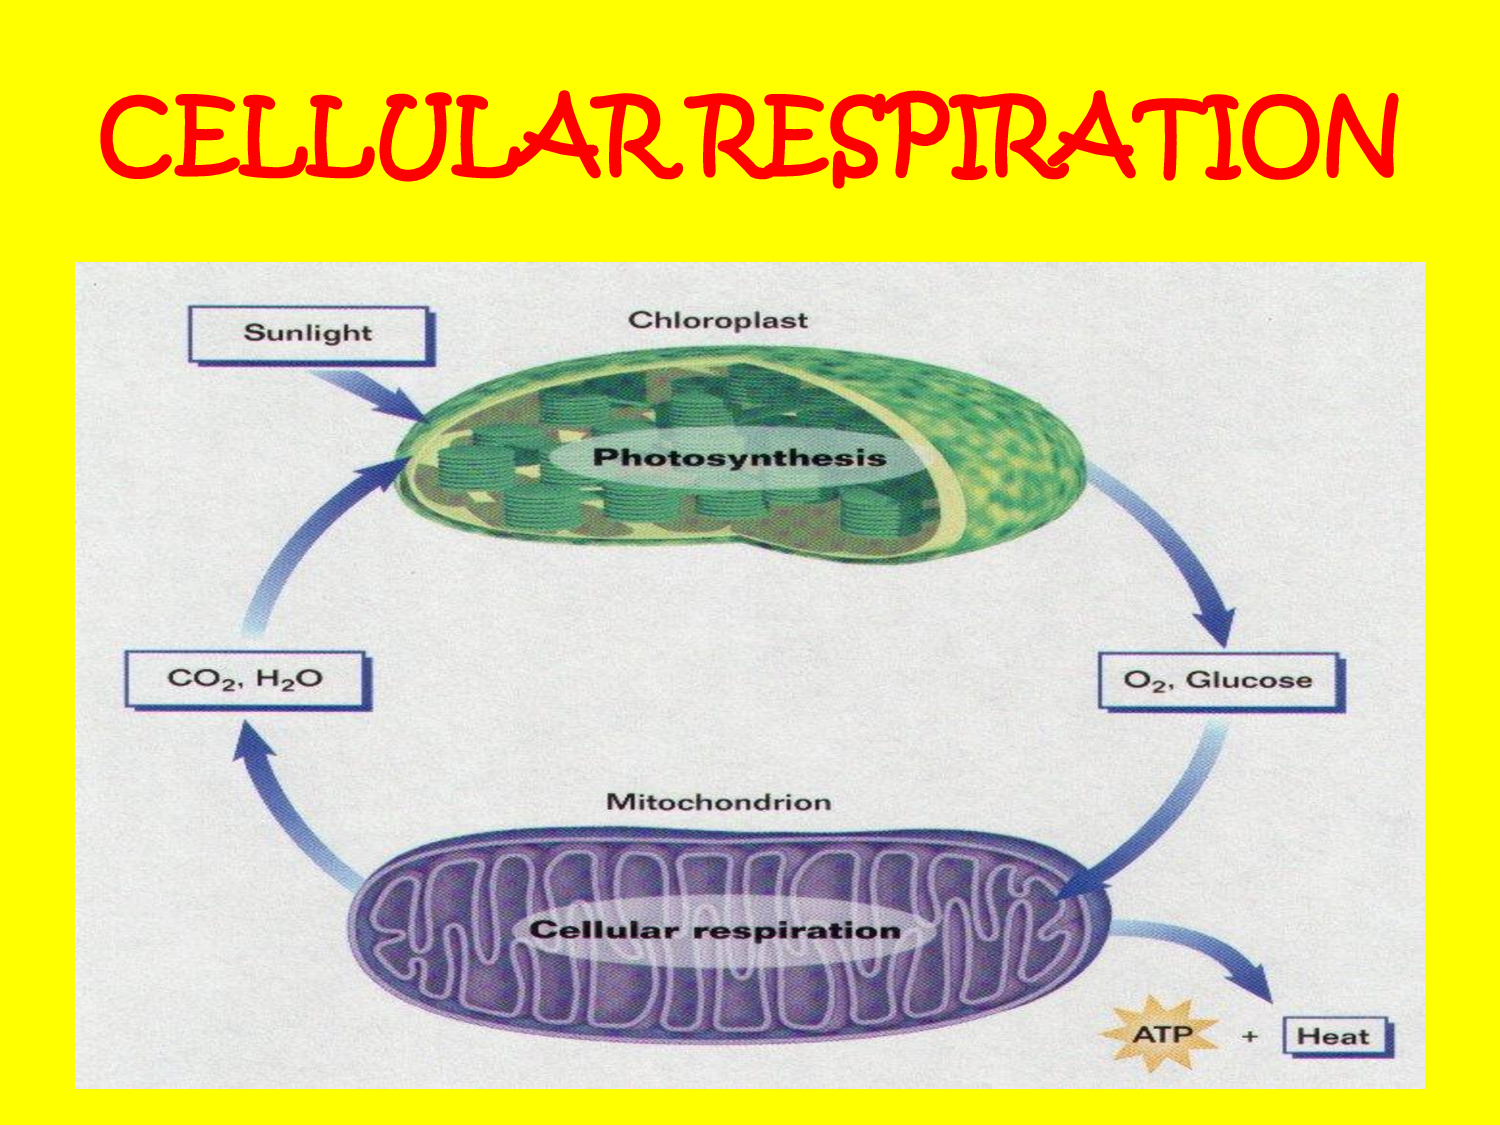 cellular respiration - by amgad hawari [infographic]